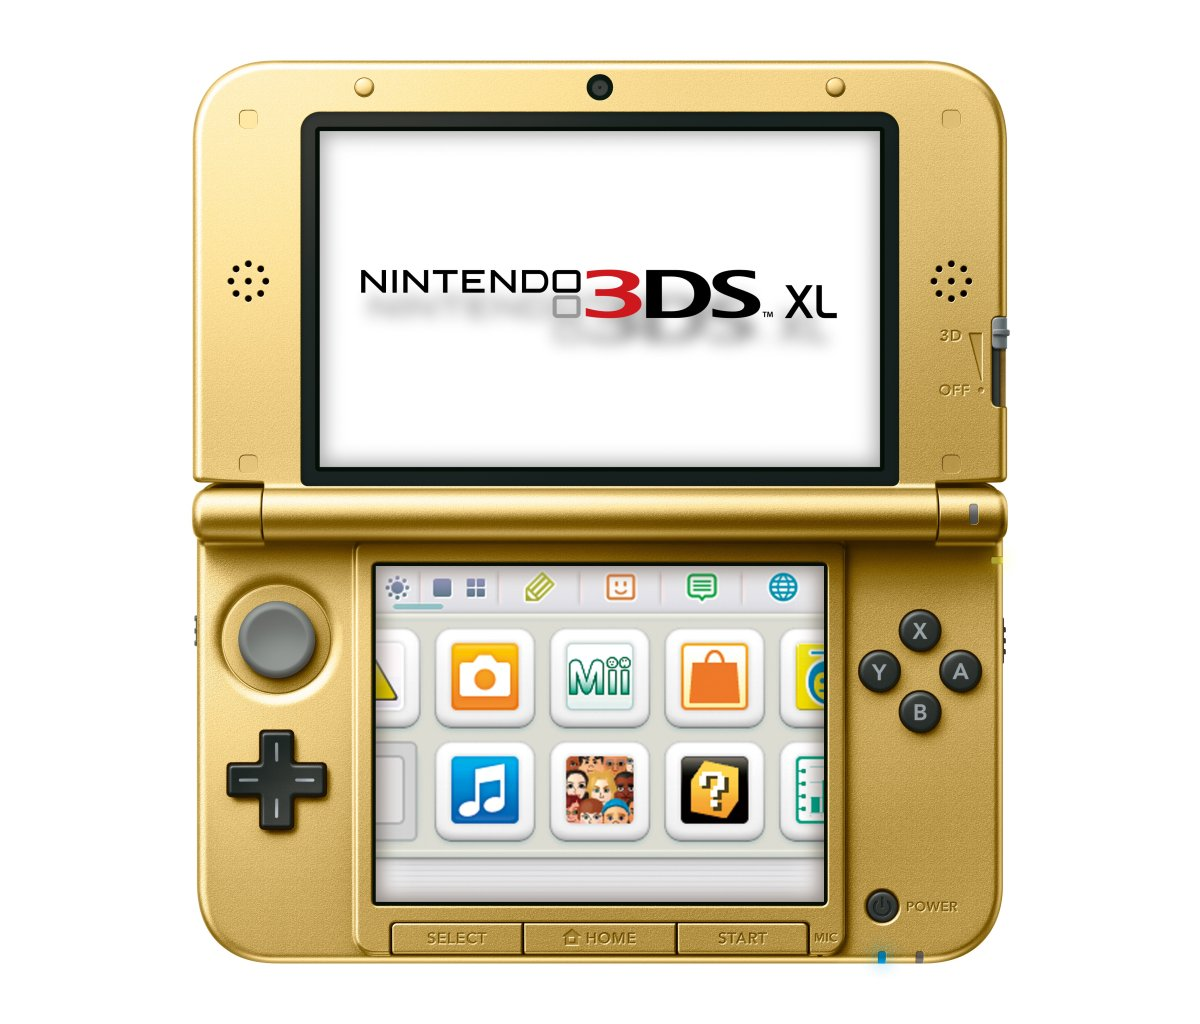 Pink Nintendo 3DS XL release date announced for UK